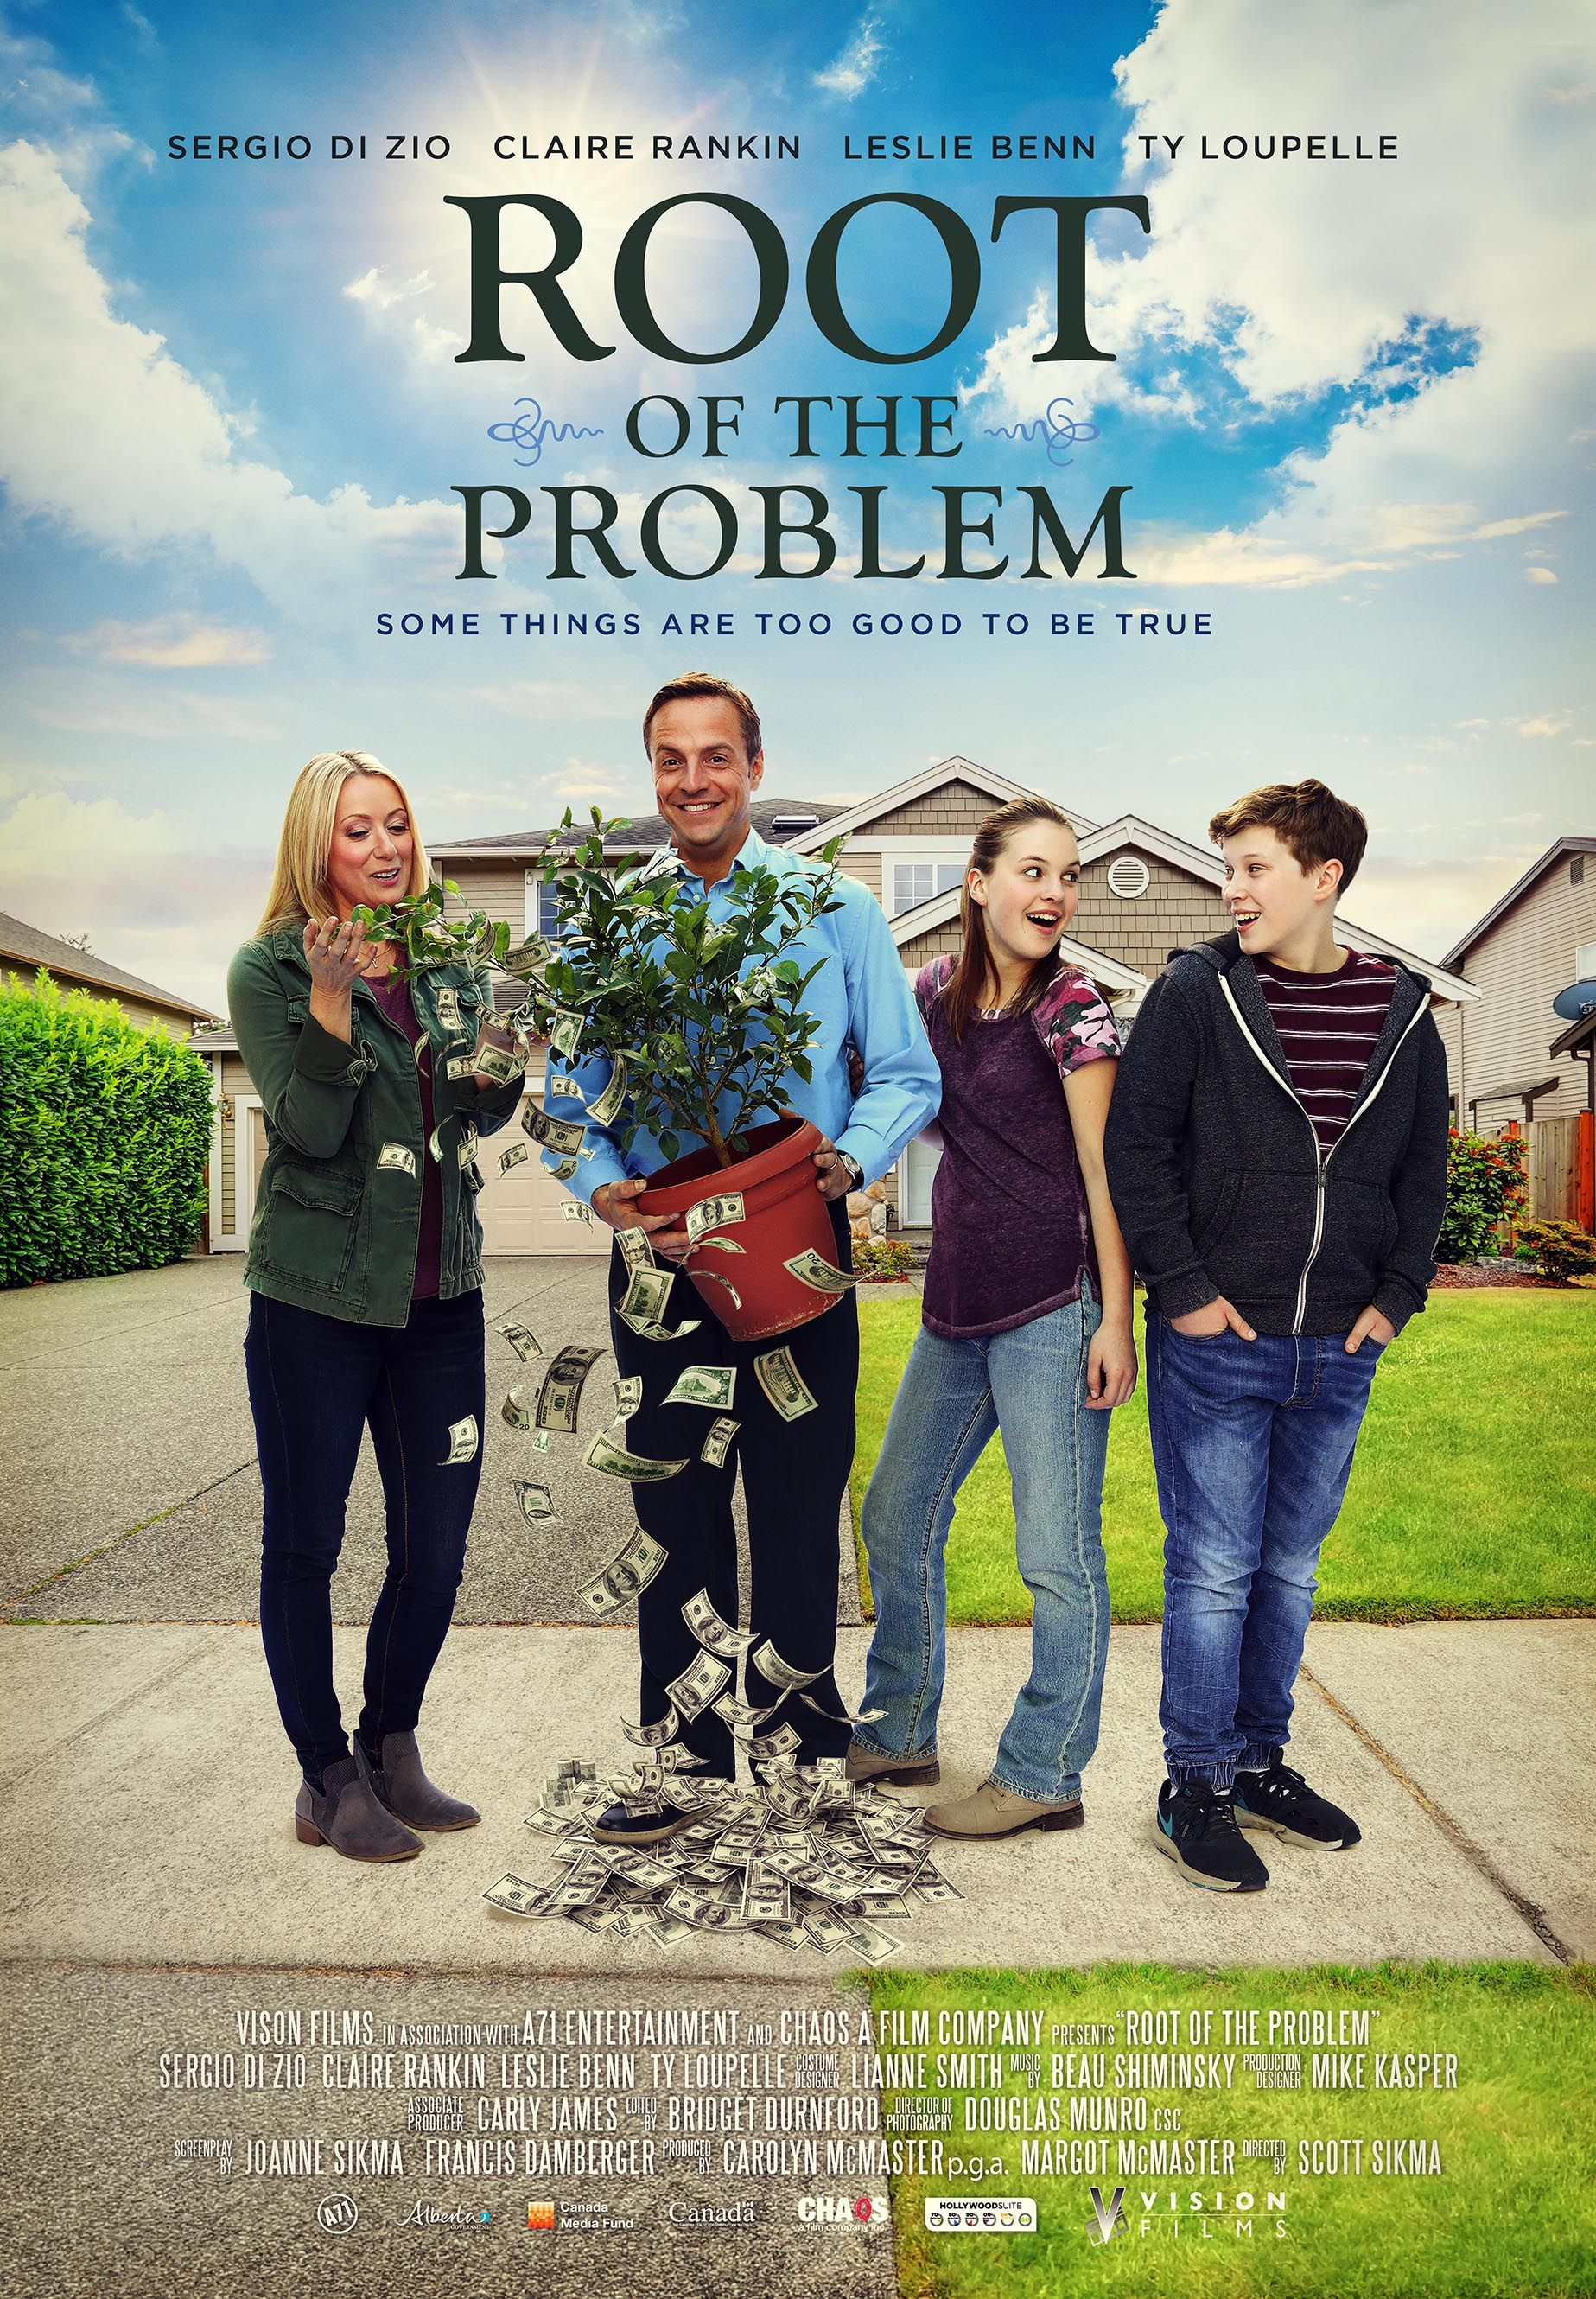 Root Of The Problem In 2020 Vision Film Christian Films Film Companies